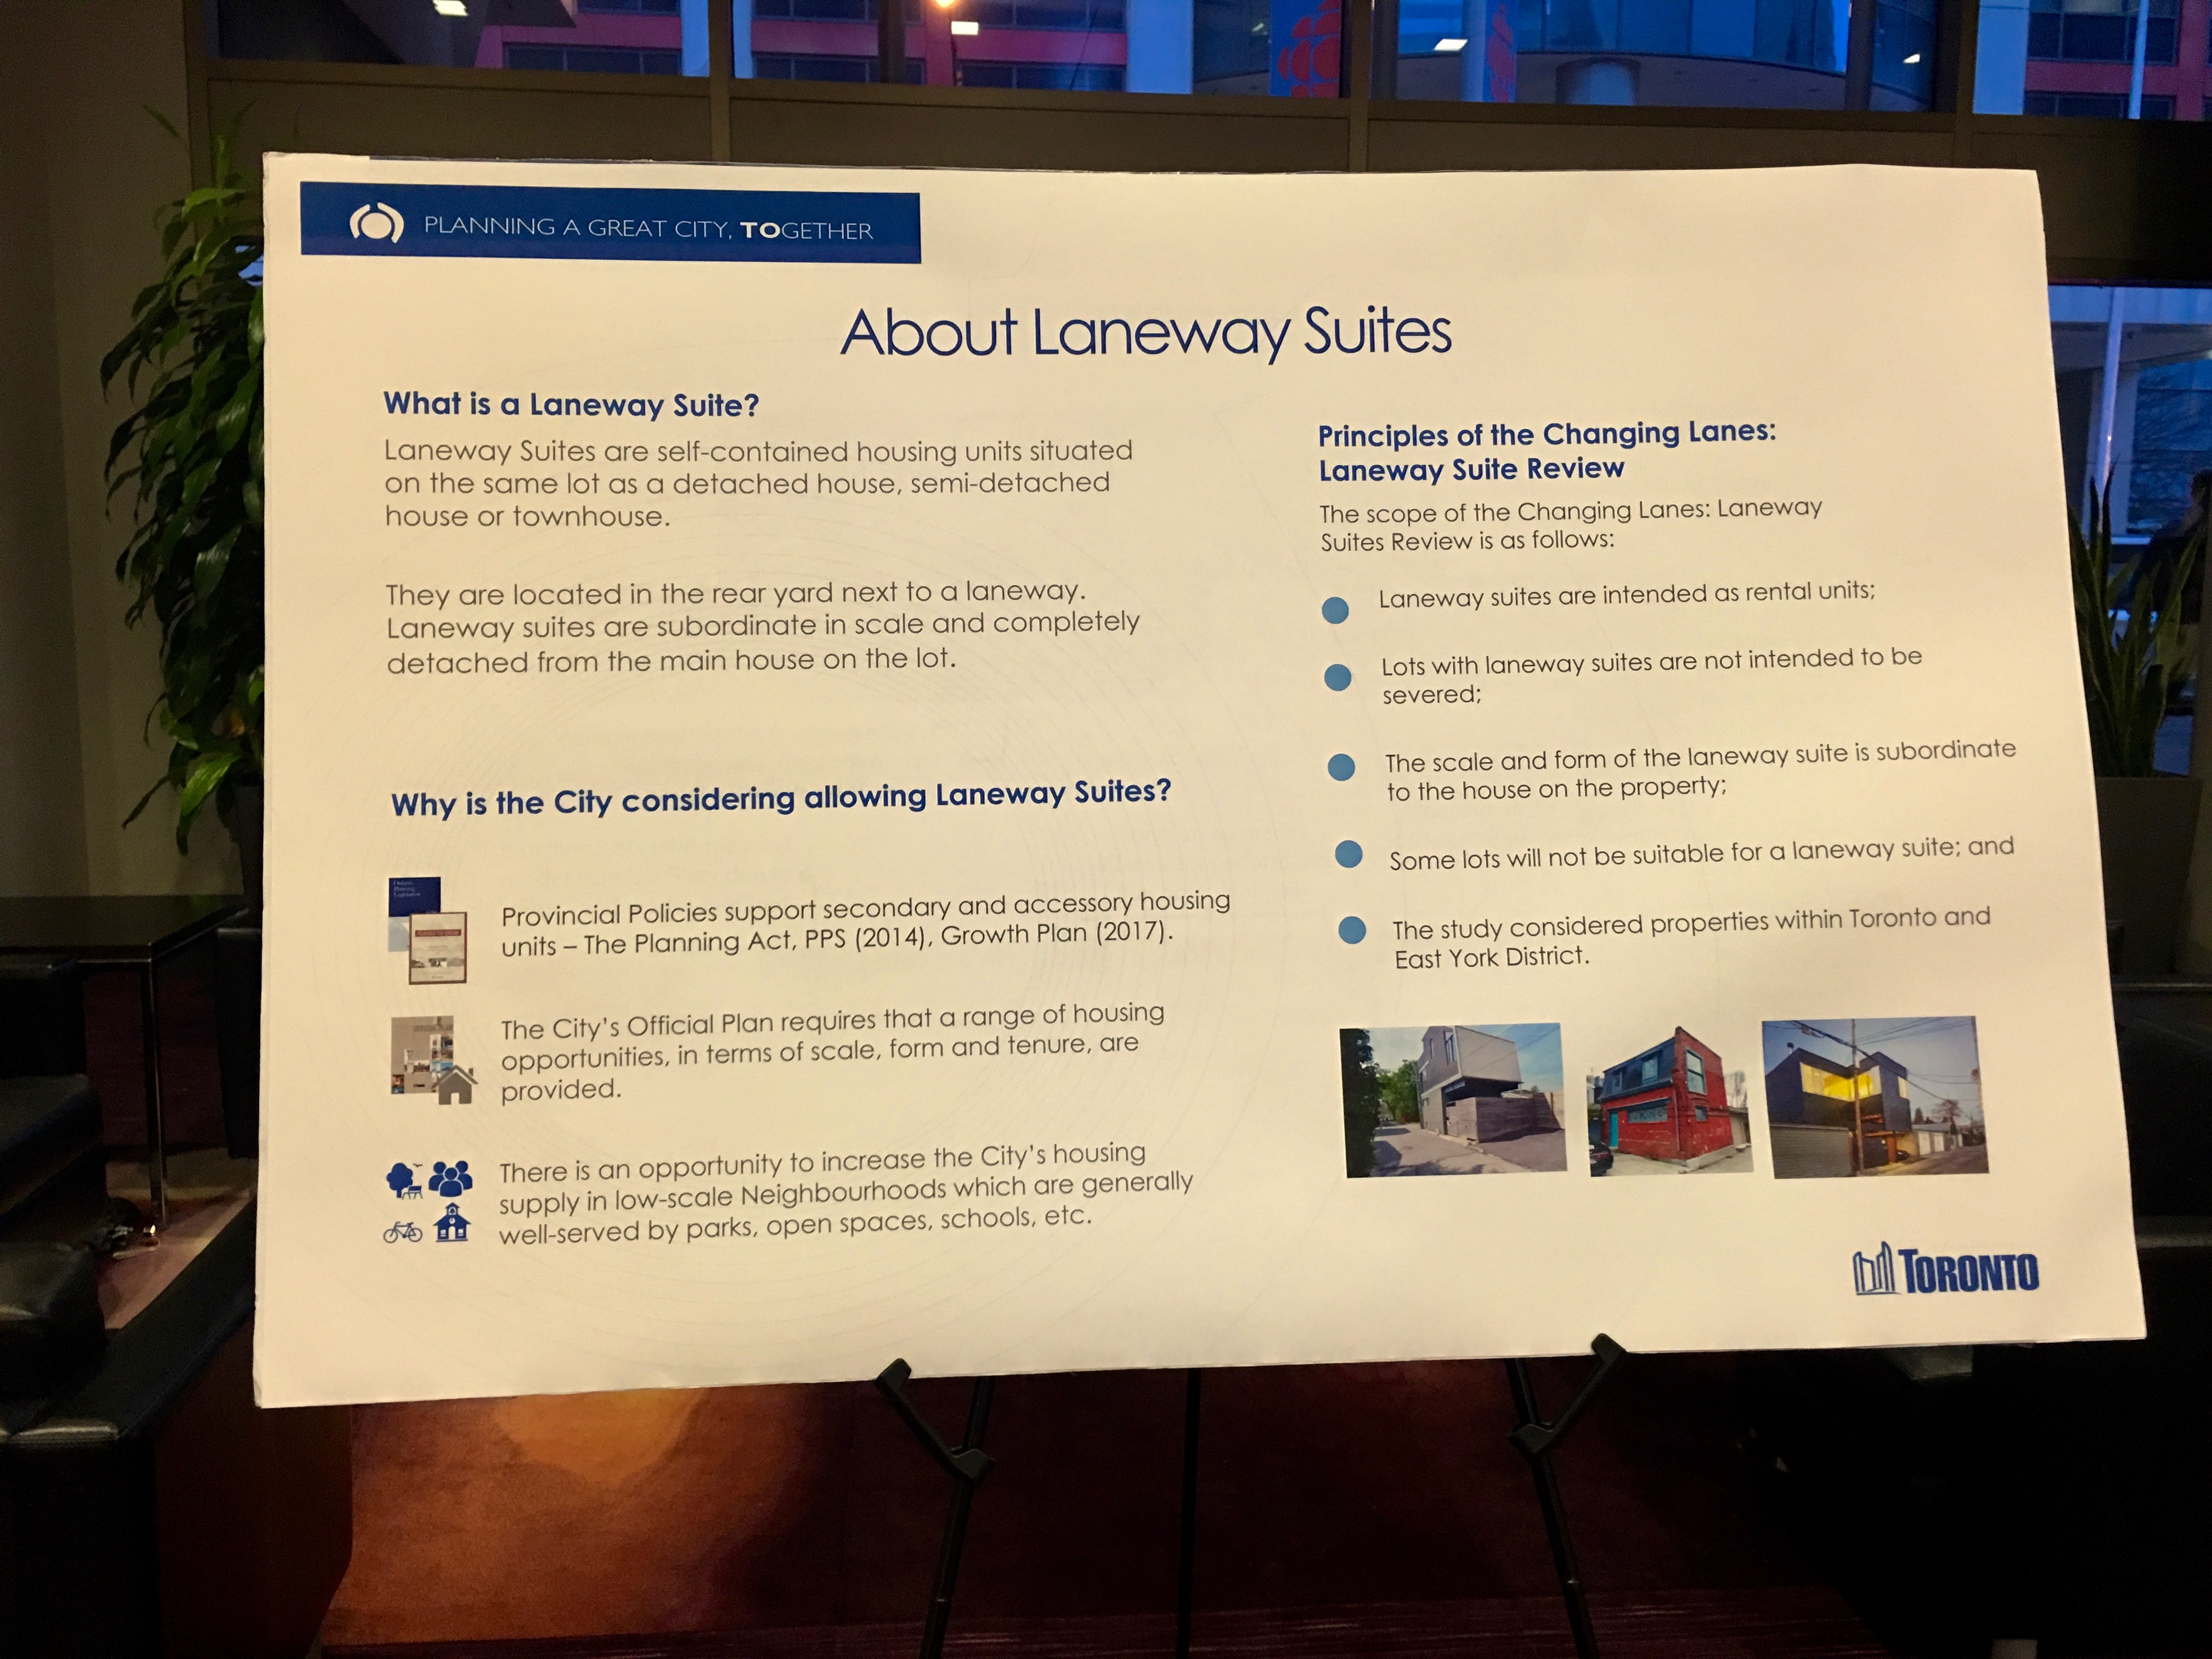 7:21 p.m., March 29, 2018. An information board at Thursday night's City of Toronto consultation meeting on laneway suites. A report on new building laneway building policies is expected before the May Toronto and East York Community Council meeting.